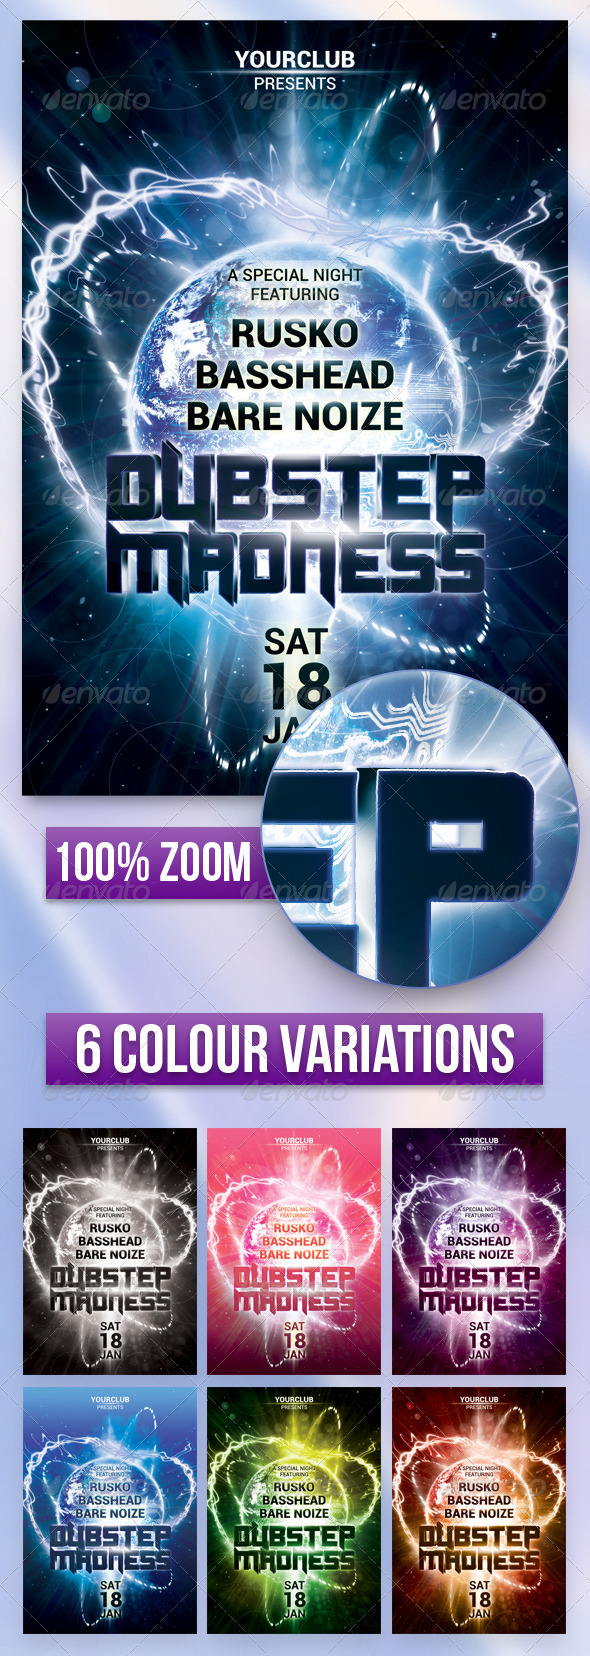 A5 Dubstep Madness Club Flyer / Poster 7 in 1 - Events Flyers